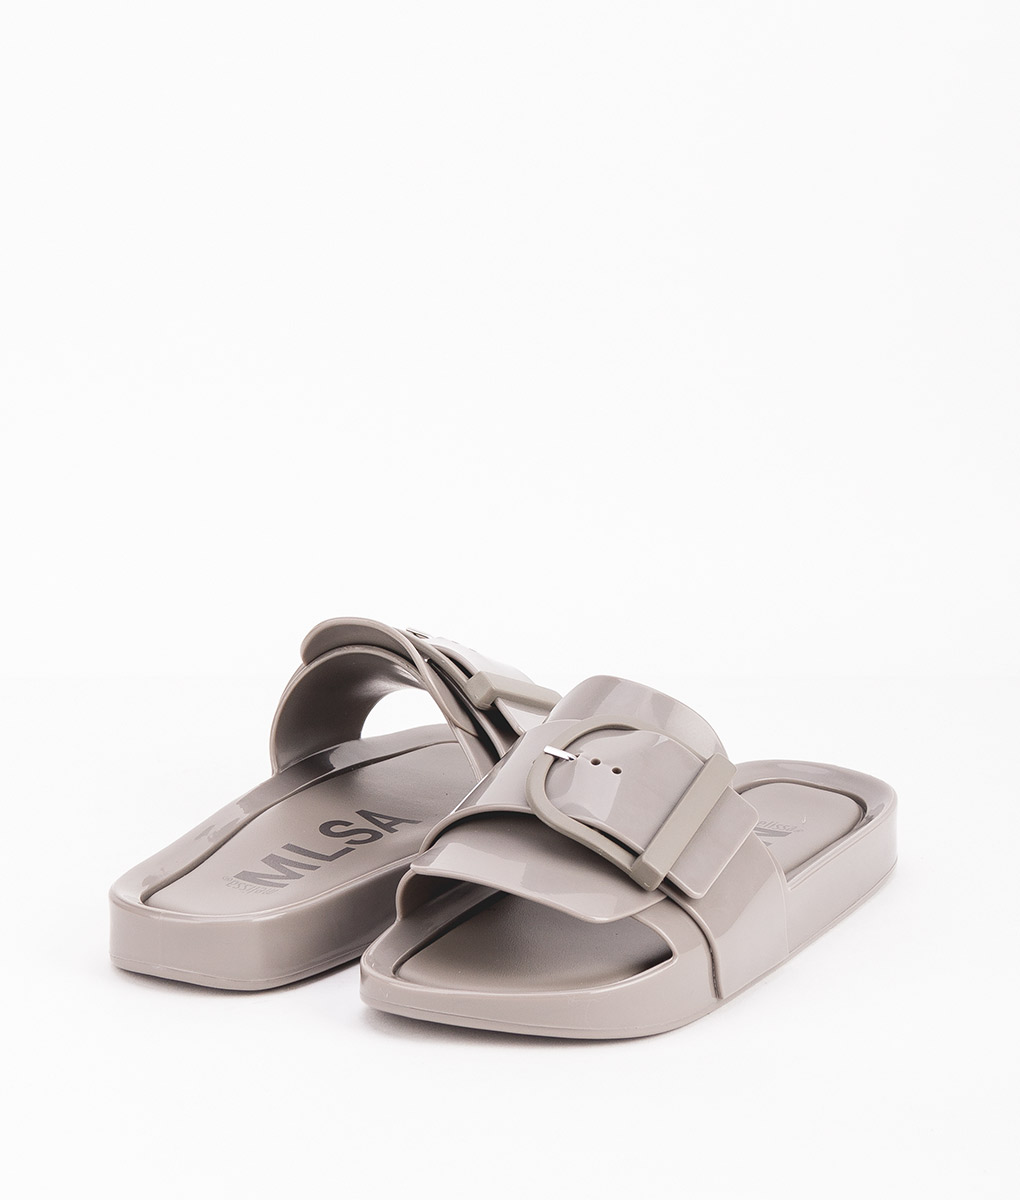 MELISSA Women Flip Flops 32286 BEACH SIDE IV, Grey 84.99 1